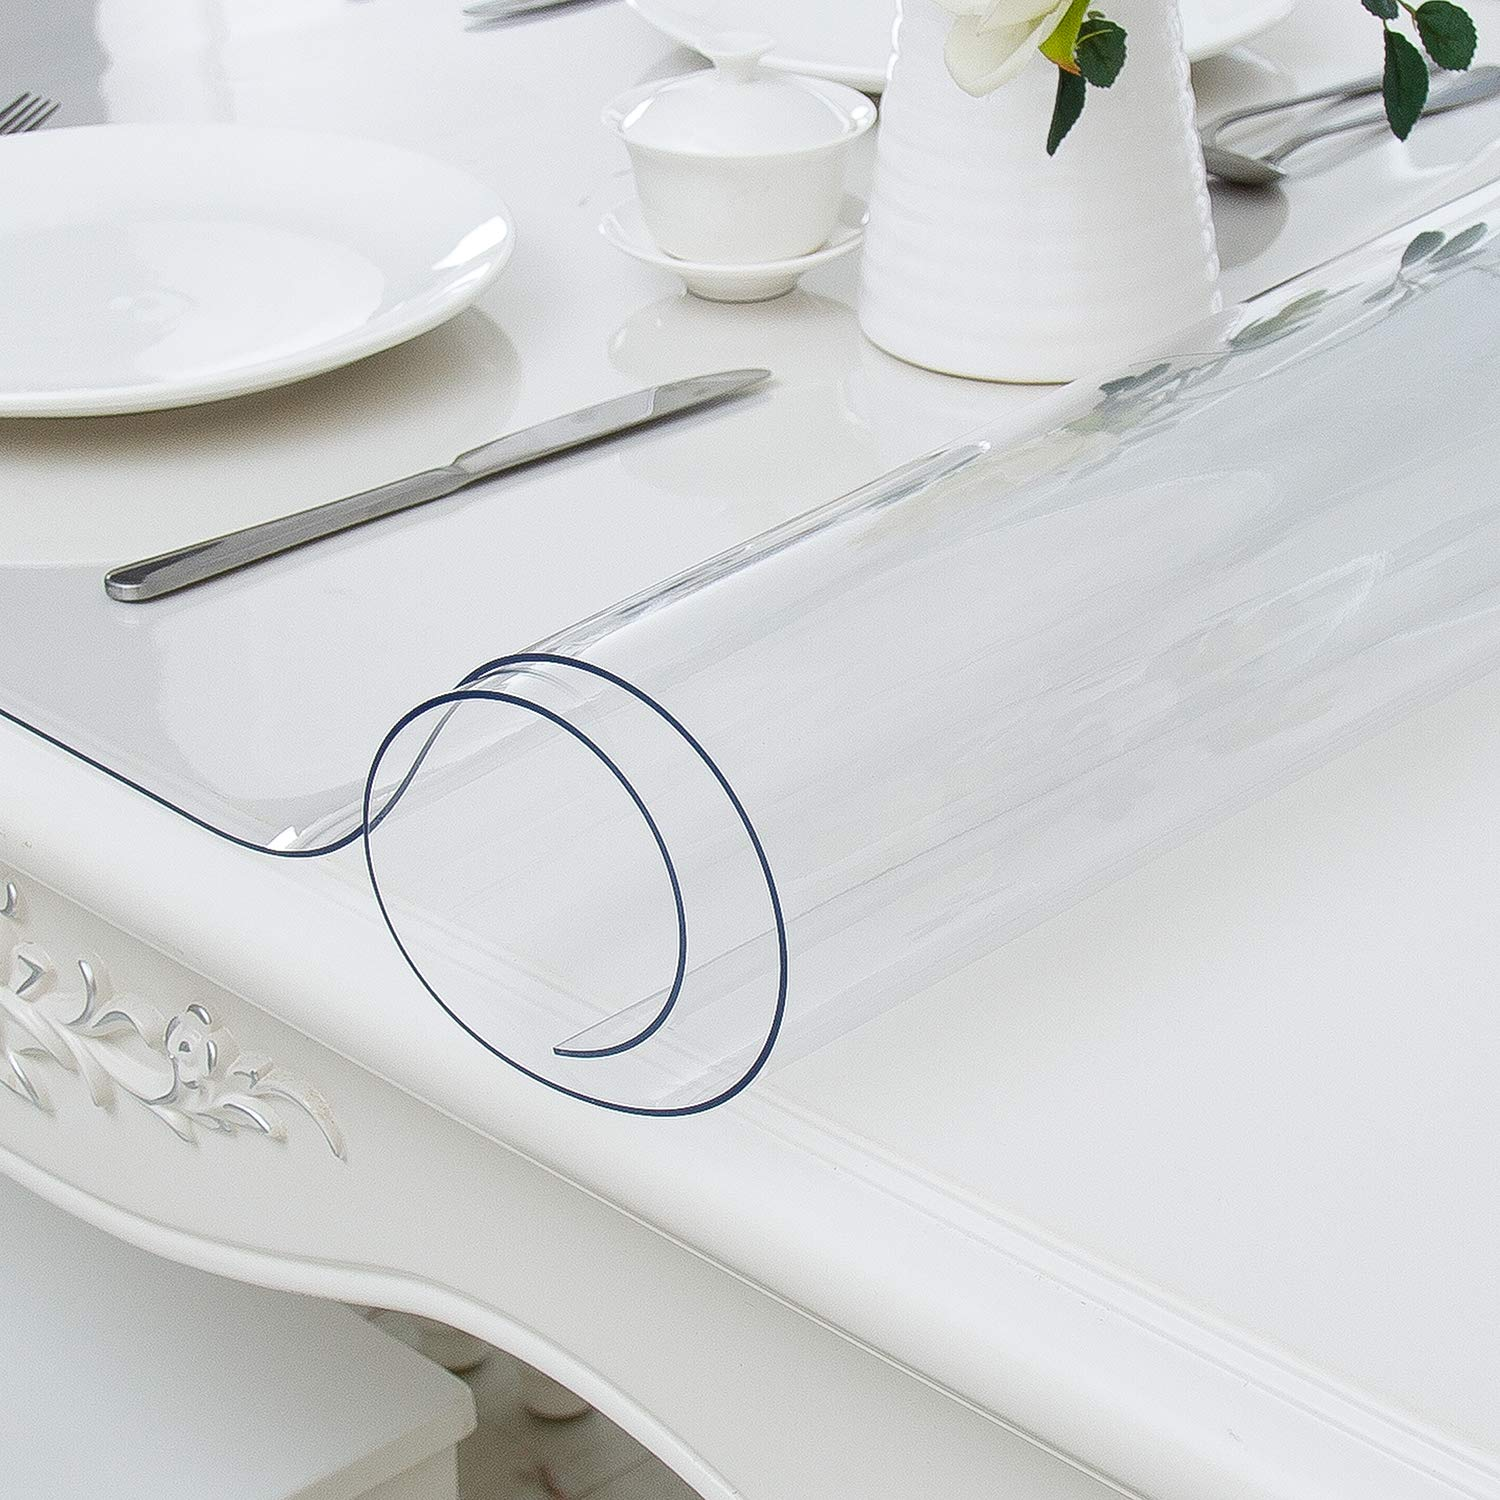 Hewaba Home Rectangle PVC Table Protector - 24 x 48 Inches, 2mm Thick Custom Clear Waterproof Plastic Tablecloth, Kitchen Dining Room Wooden Furniture Protective Cover